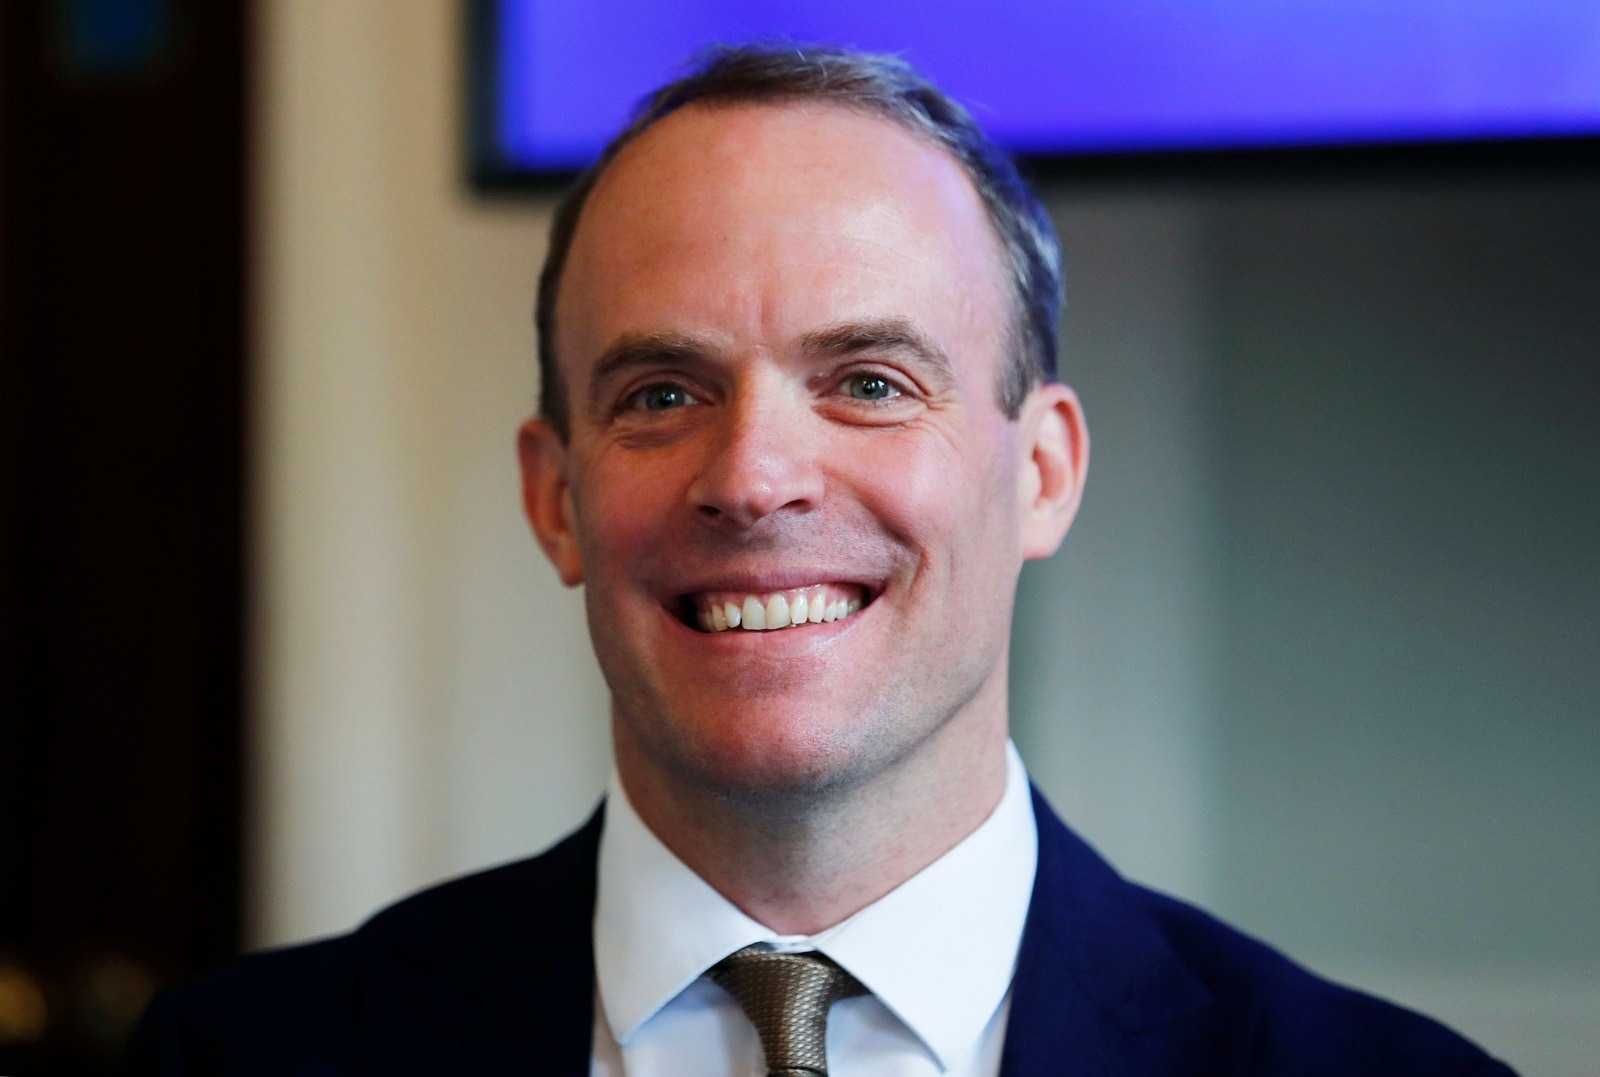 Raab, a leading figure among pro-Brexit Conservatives, said he did not want to exit without a deal, but would do so if the EU refused to budge, a stance echoed by Leadsom, who quit the government on Wednesday over May's deal.